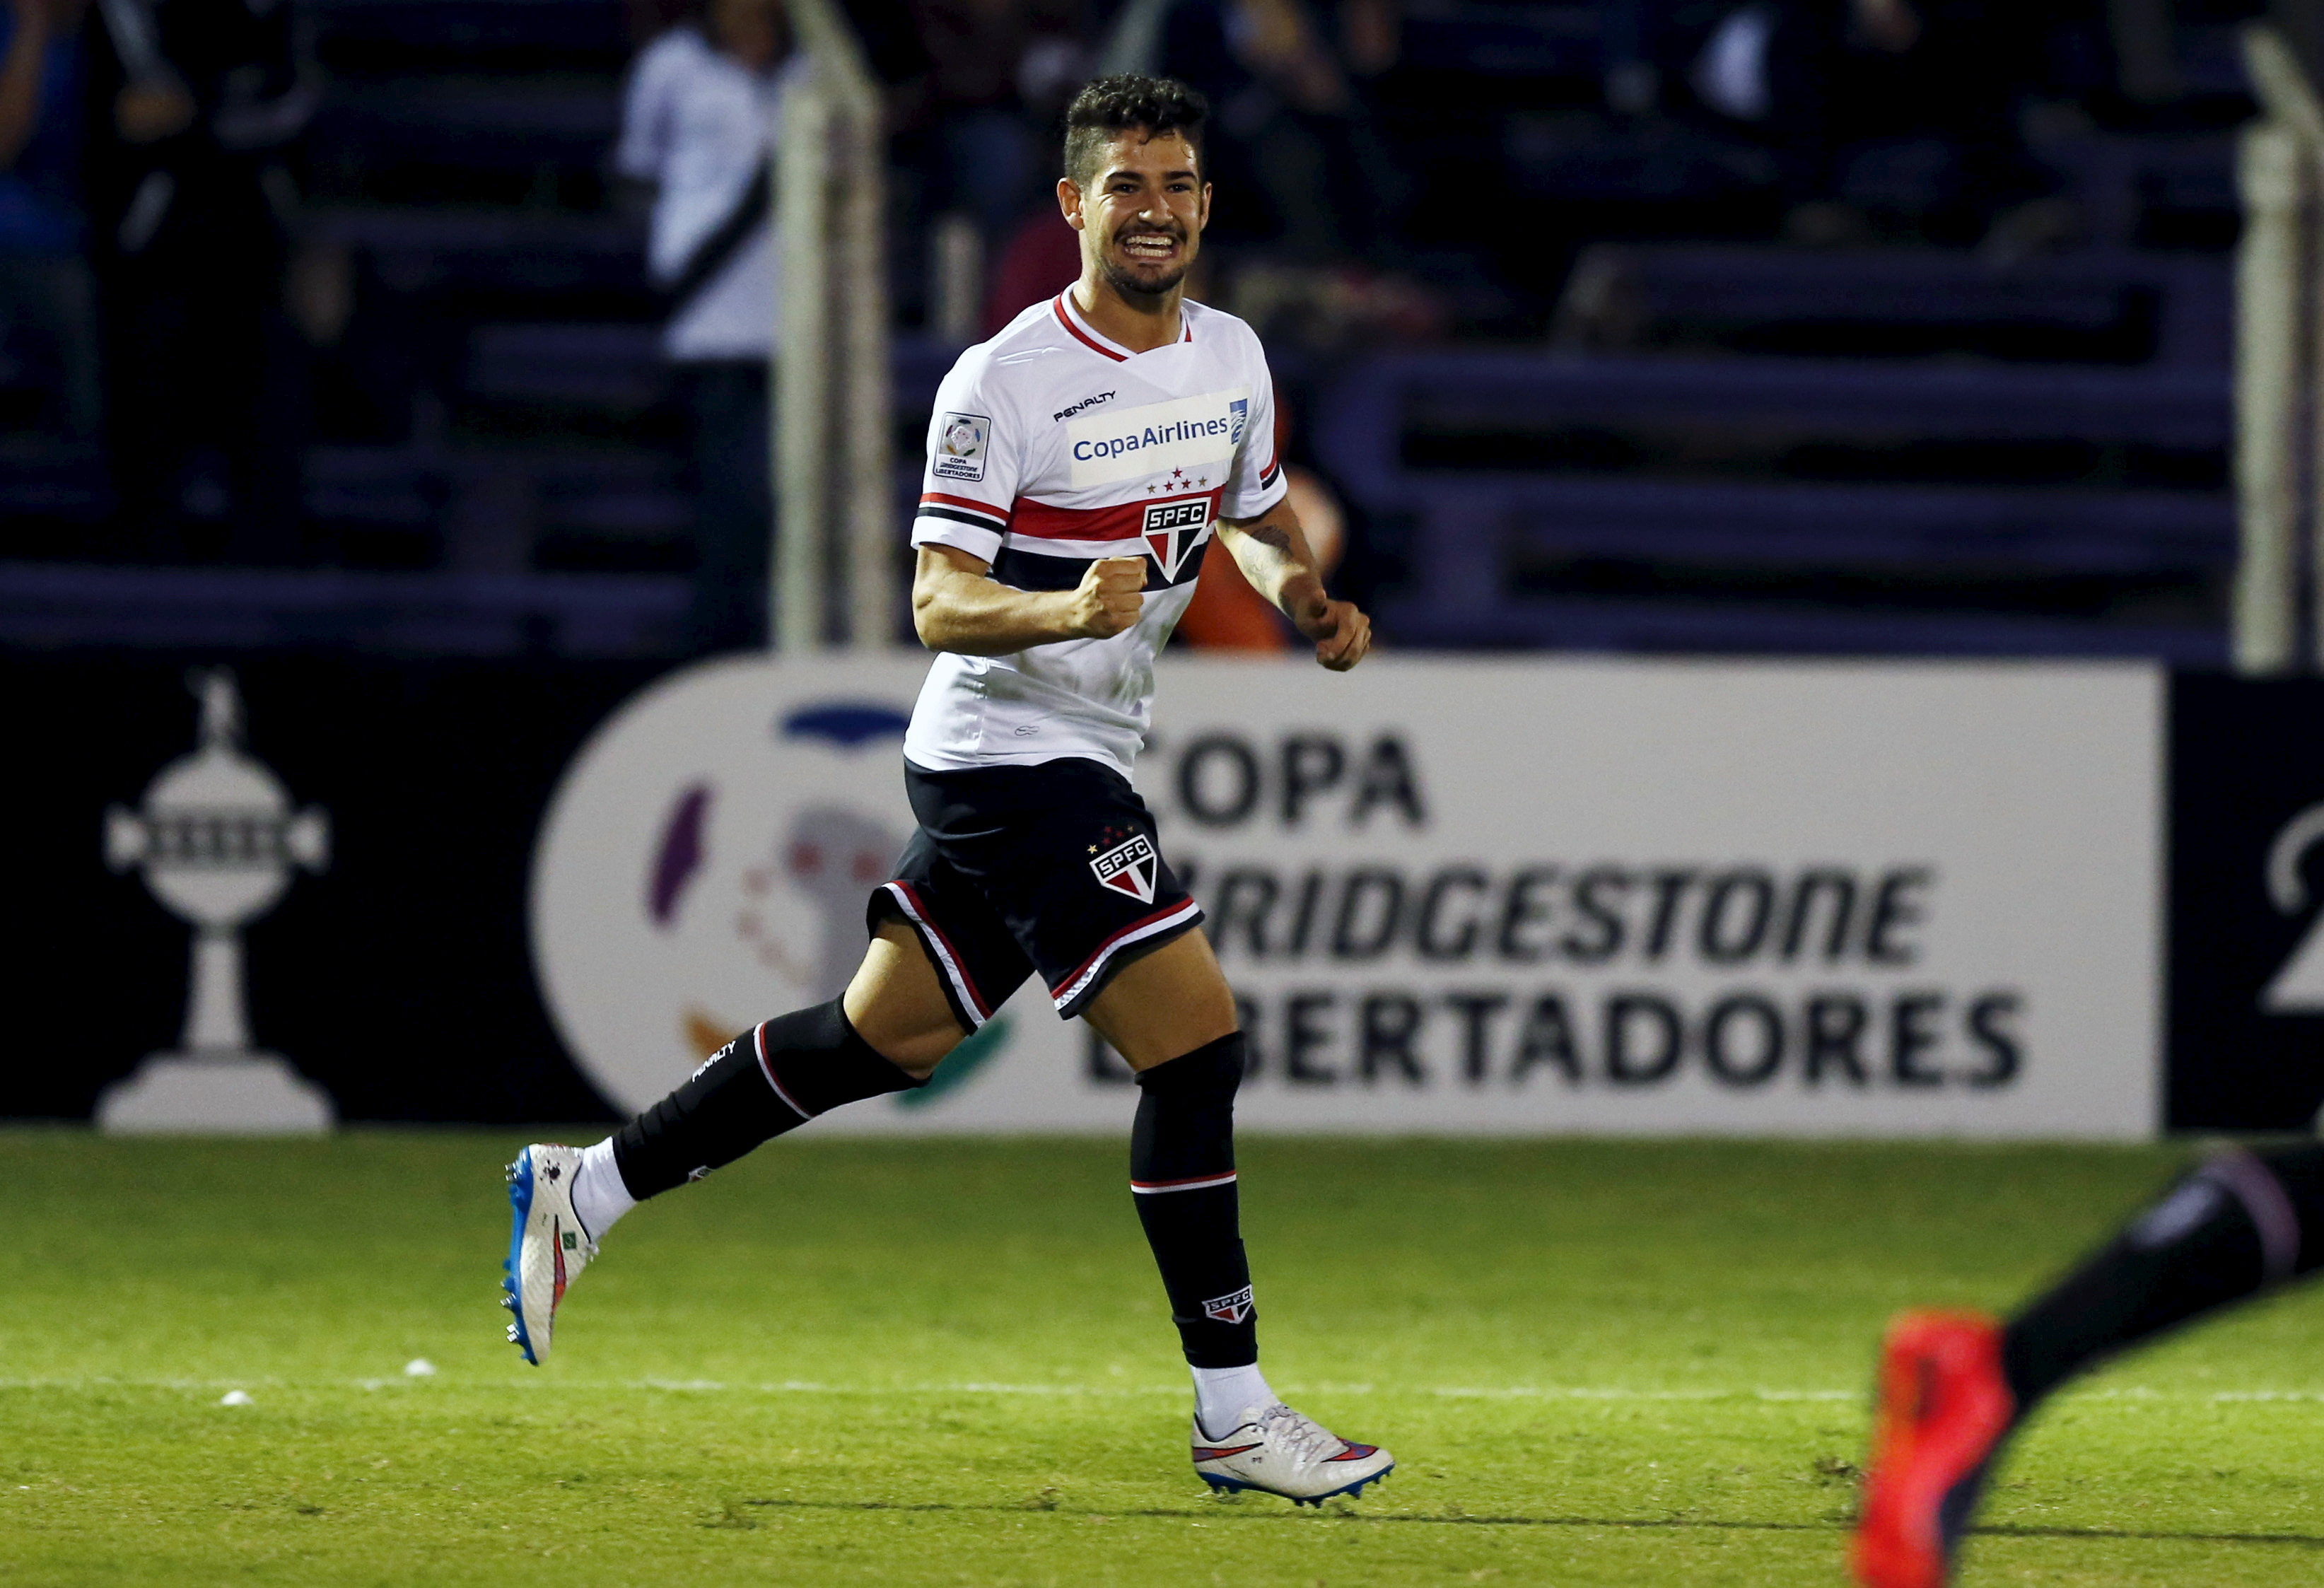 Football: Brazil's Pato returns to Sao Paulo after China stint | The Star